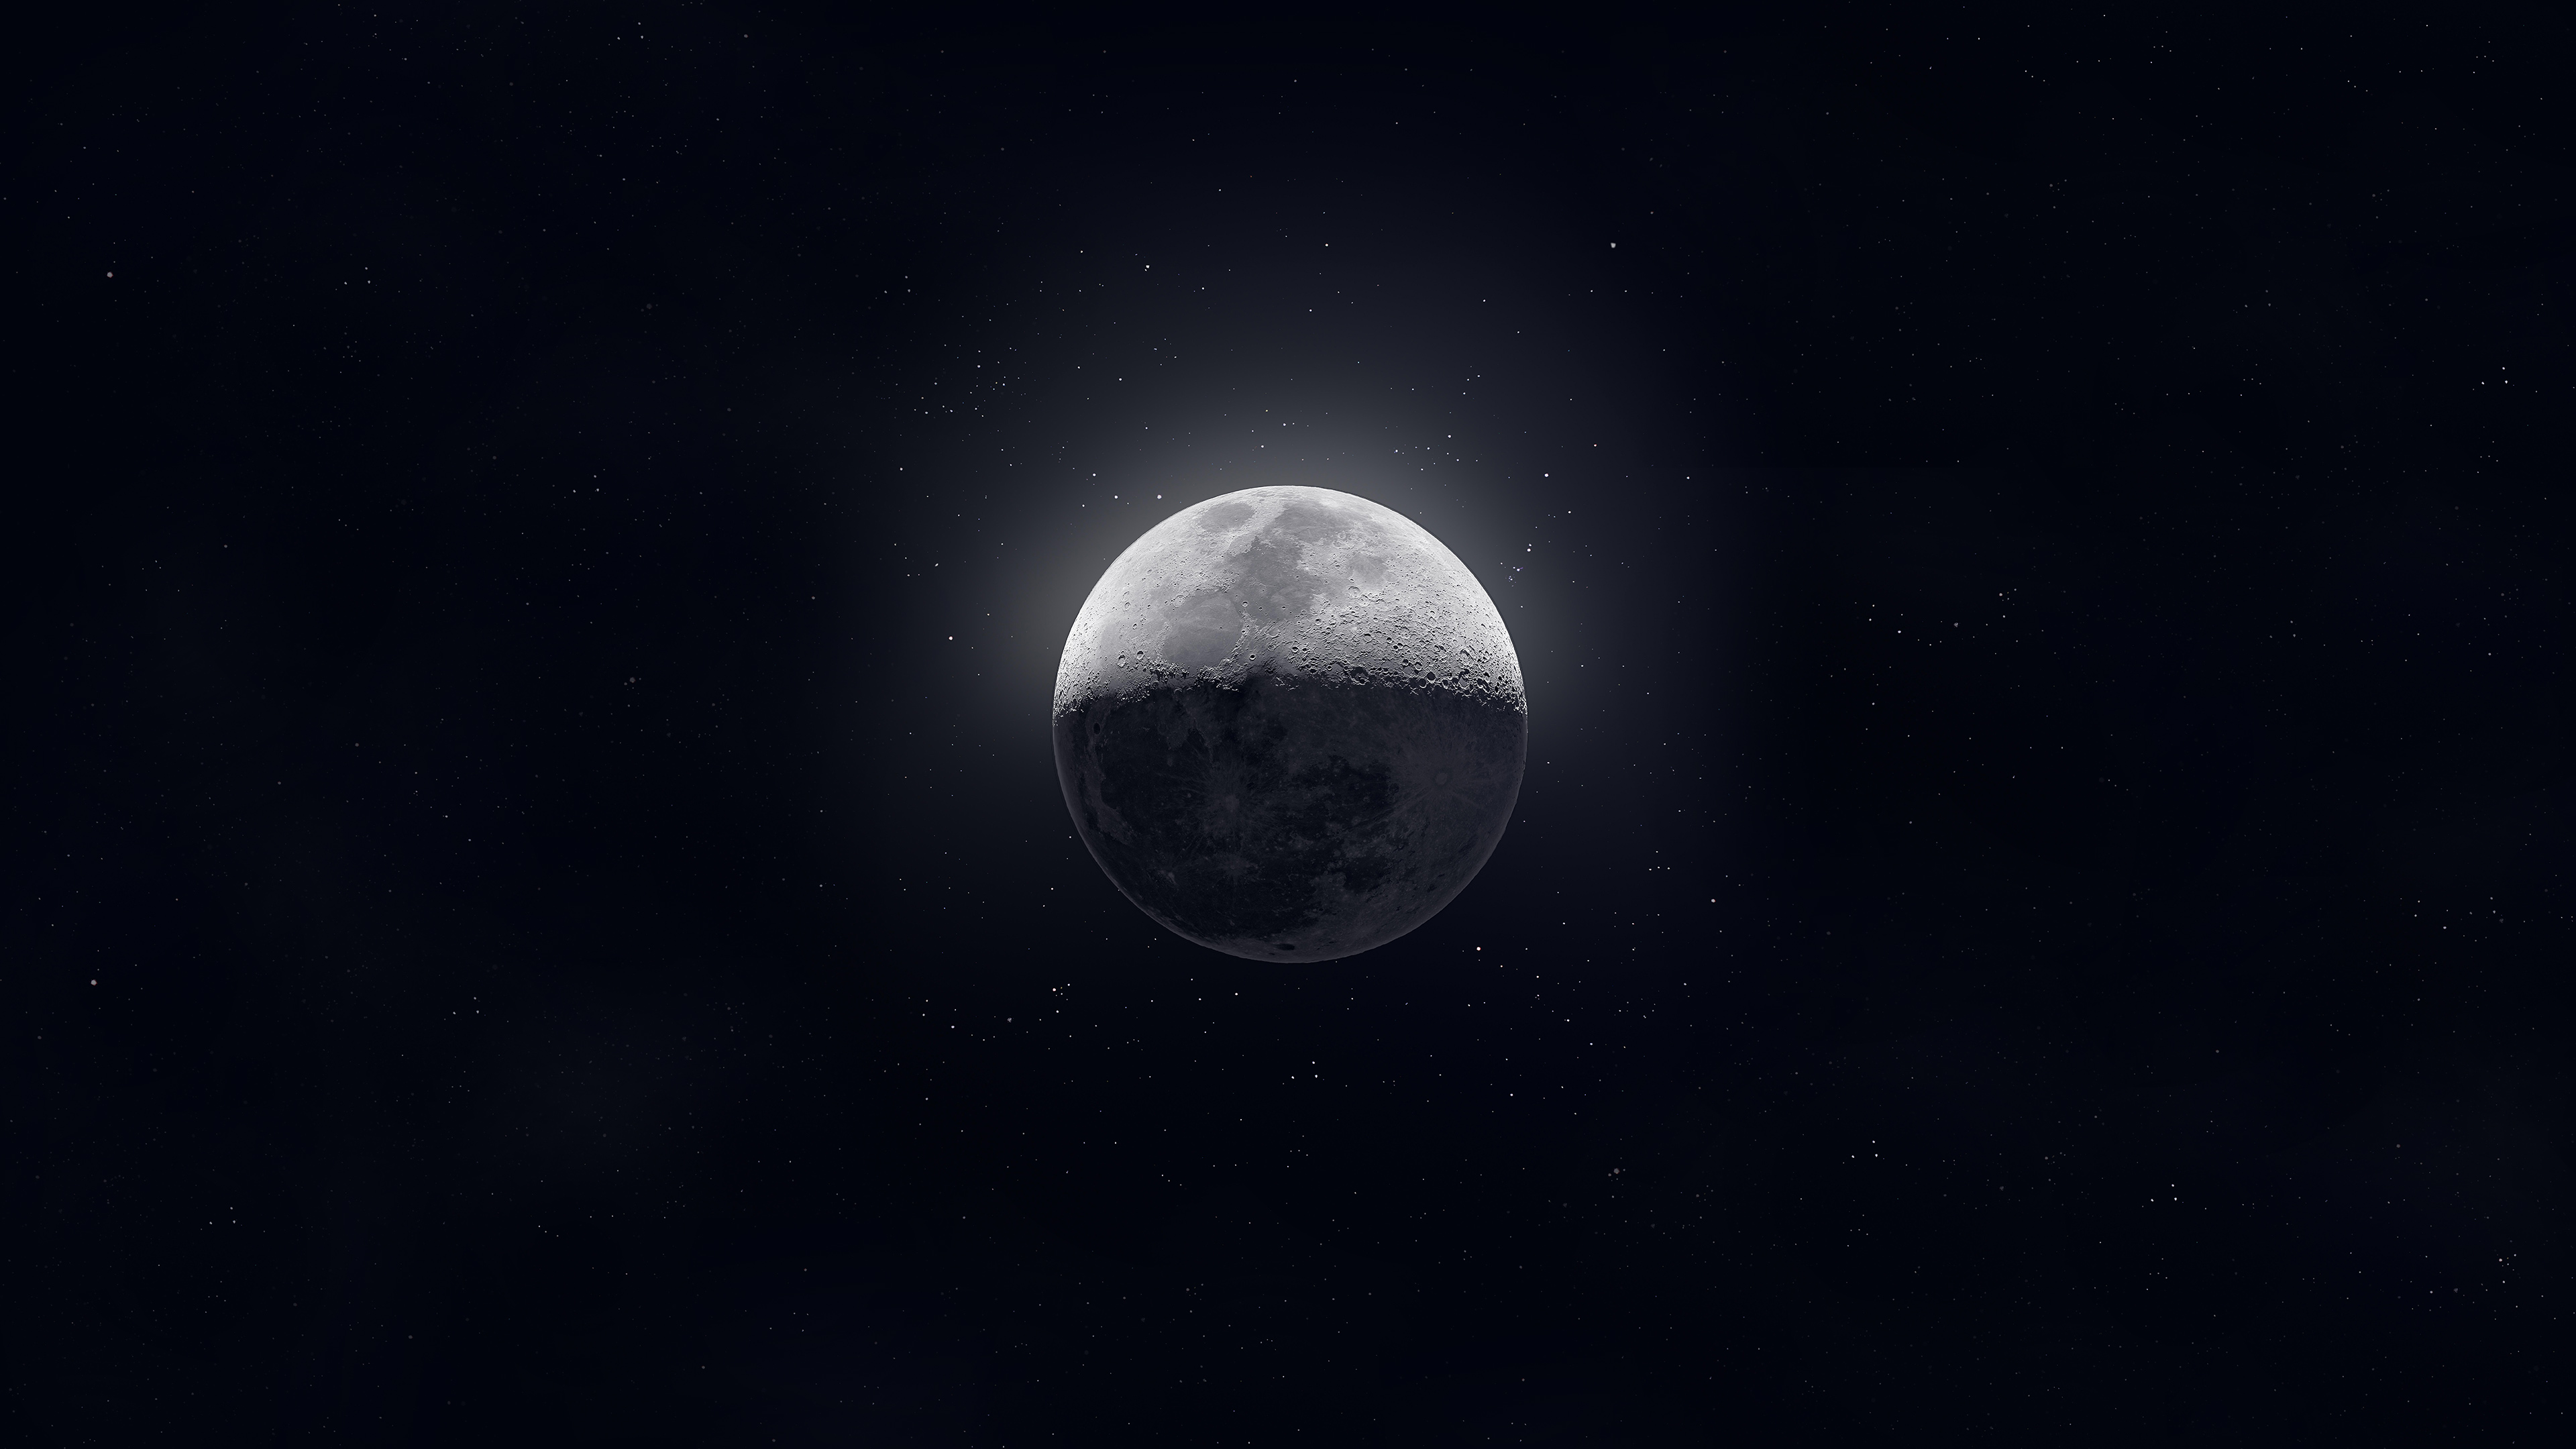 Moon Dark Sight 4k Hd Digital Universe 4k Wallpapers Images Backgrounds Photos And Pictures